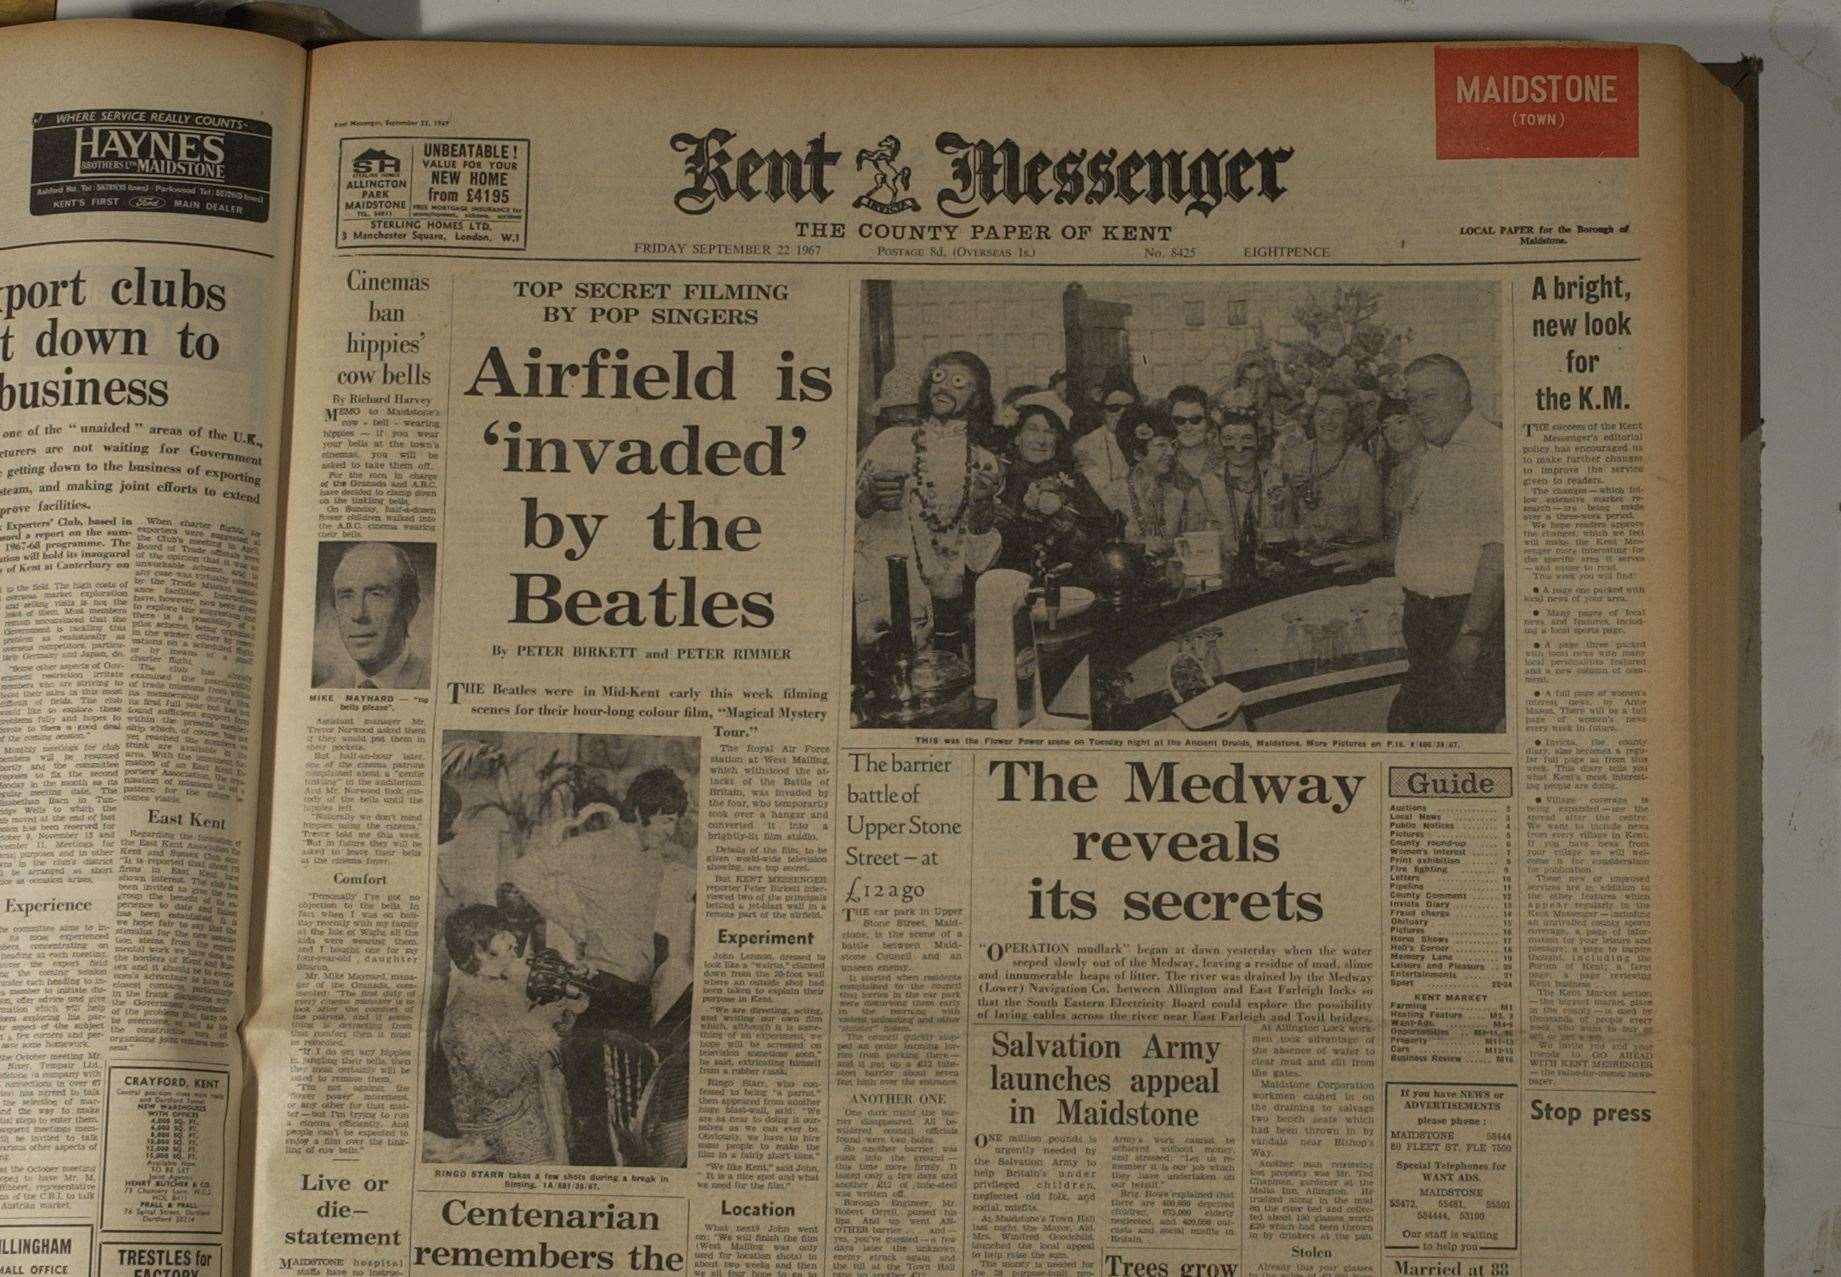 The front page of the Kent Messenger reports on the Beatles' arrival in West Malling in 1967